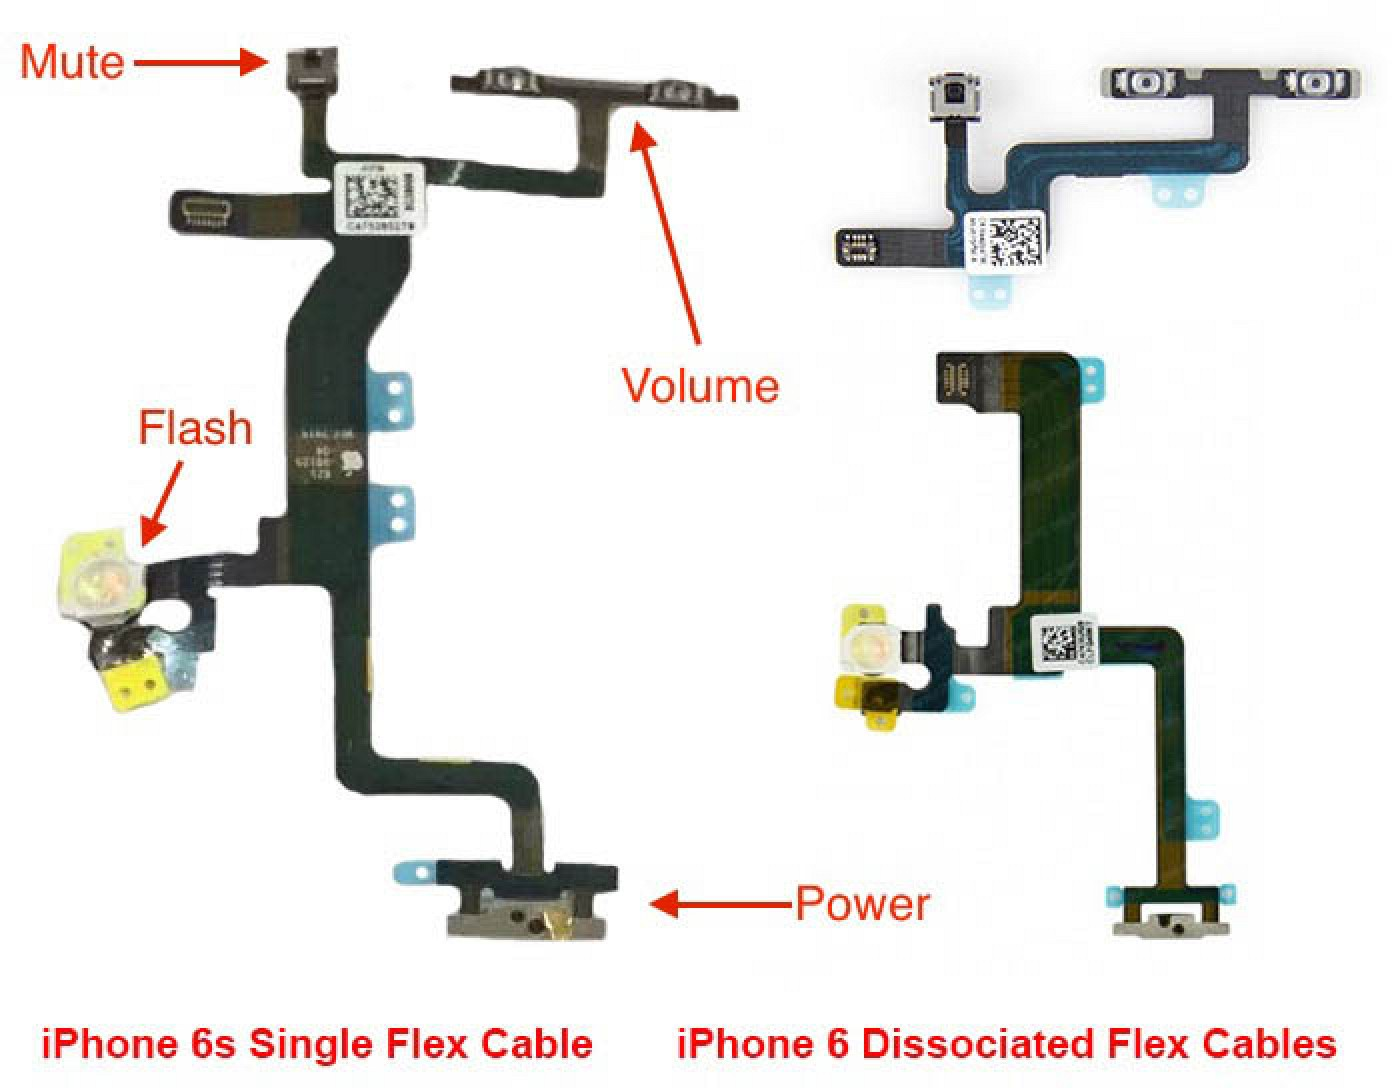 iphone 5s parts diagram more iphone 6s part photos surface as production ramps 5120